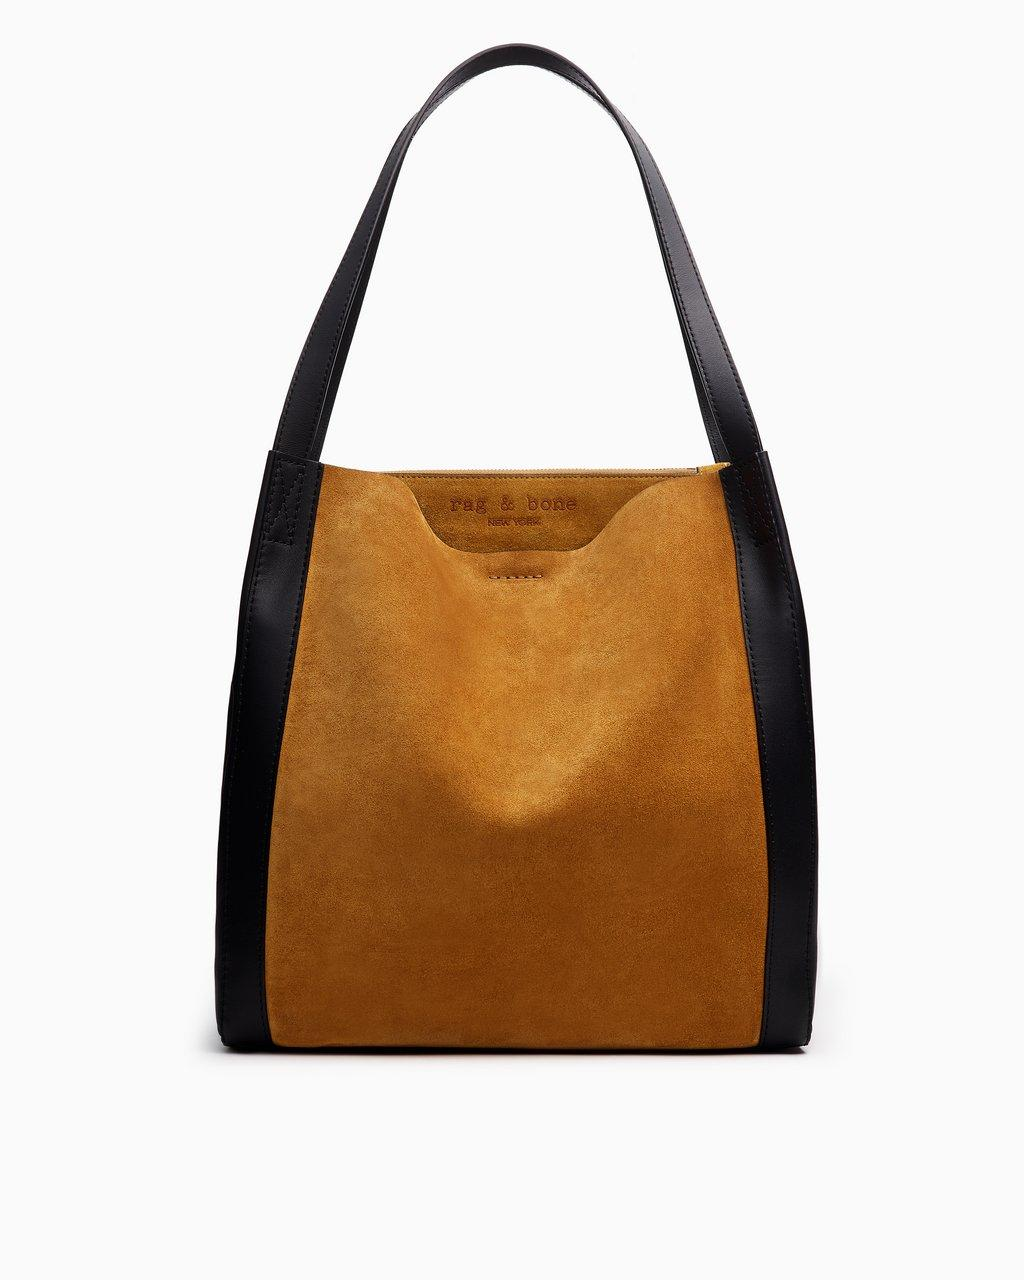 Passenger Tote - Suede